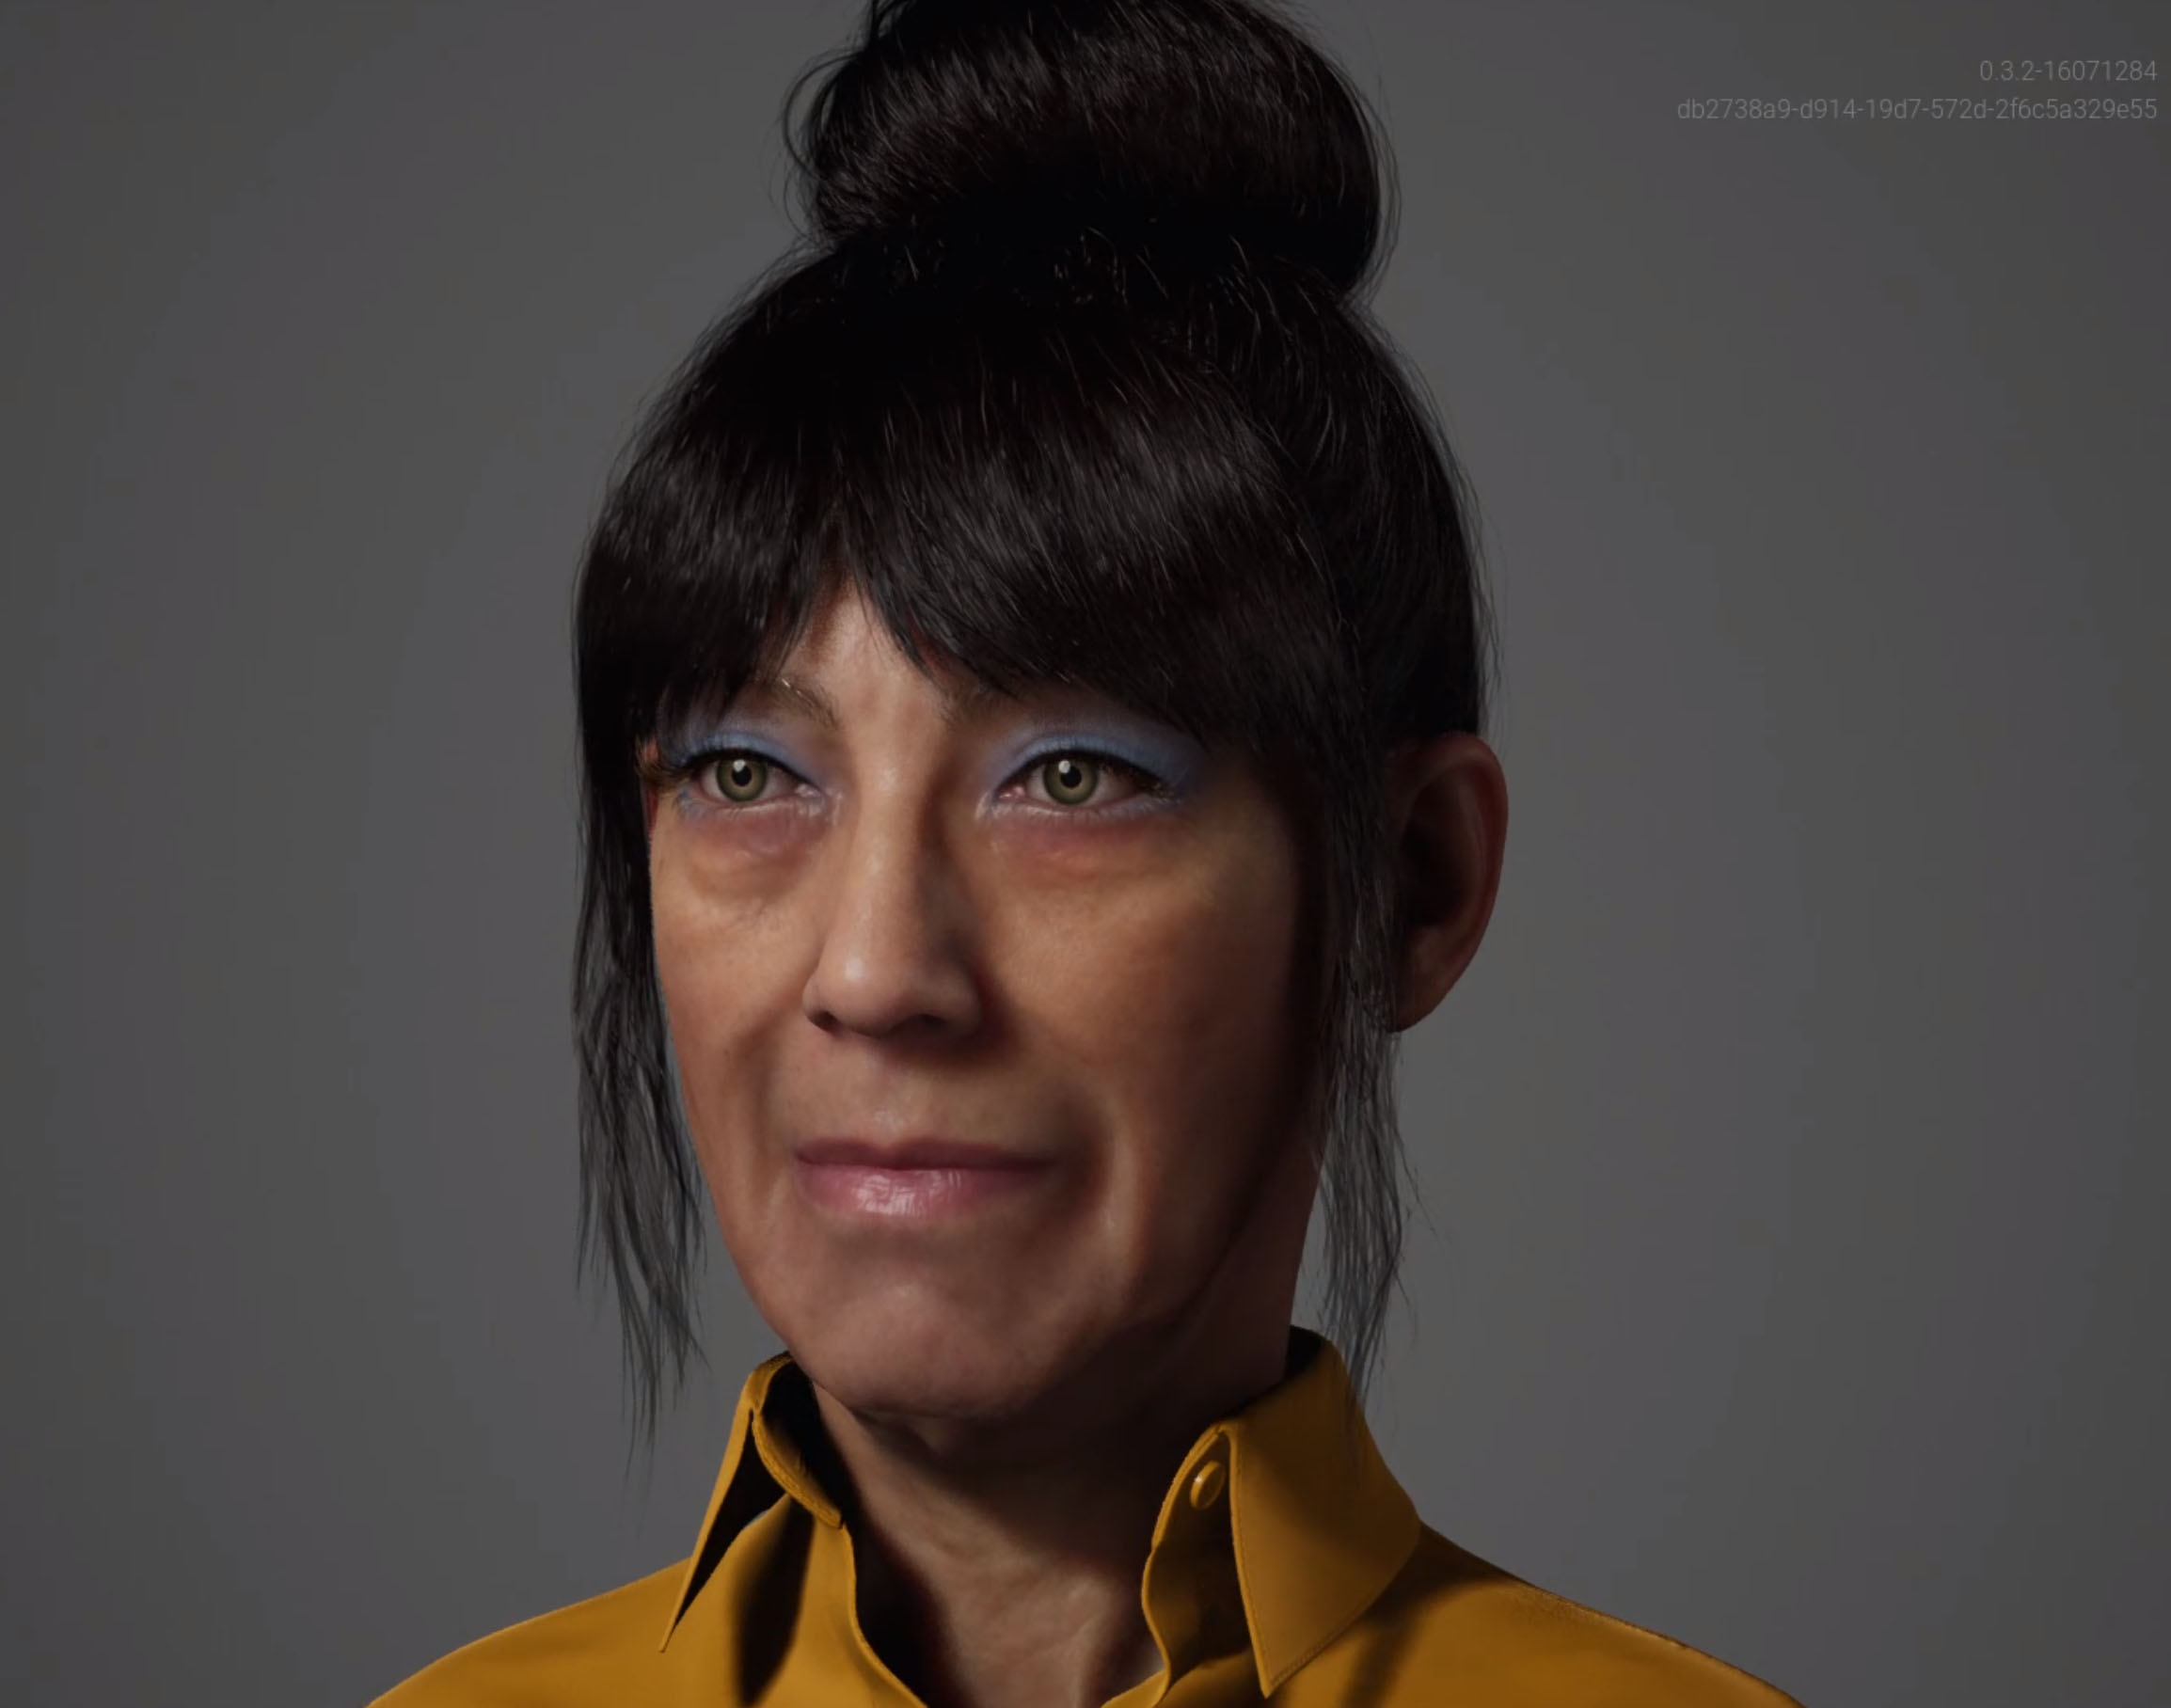 This is Ruth a MetaHuman created with the Unreal Engine Metahuman Creator